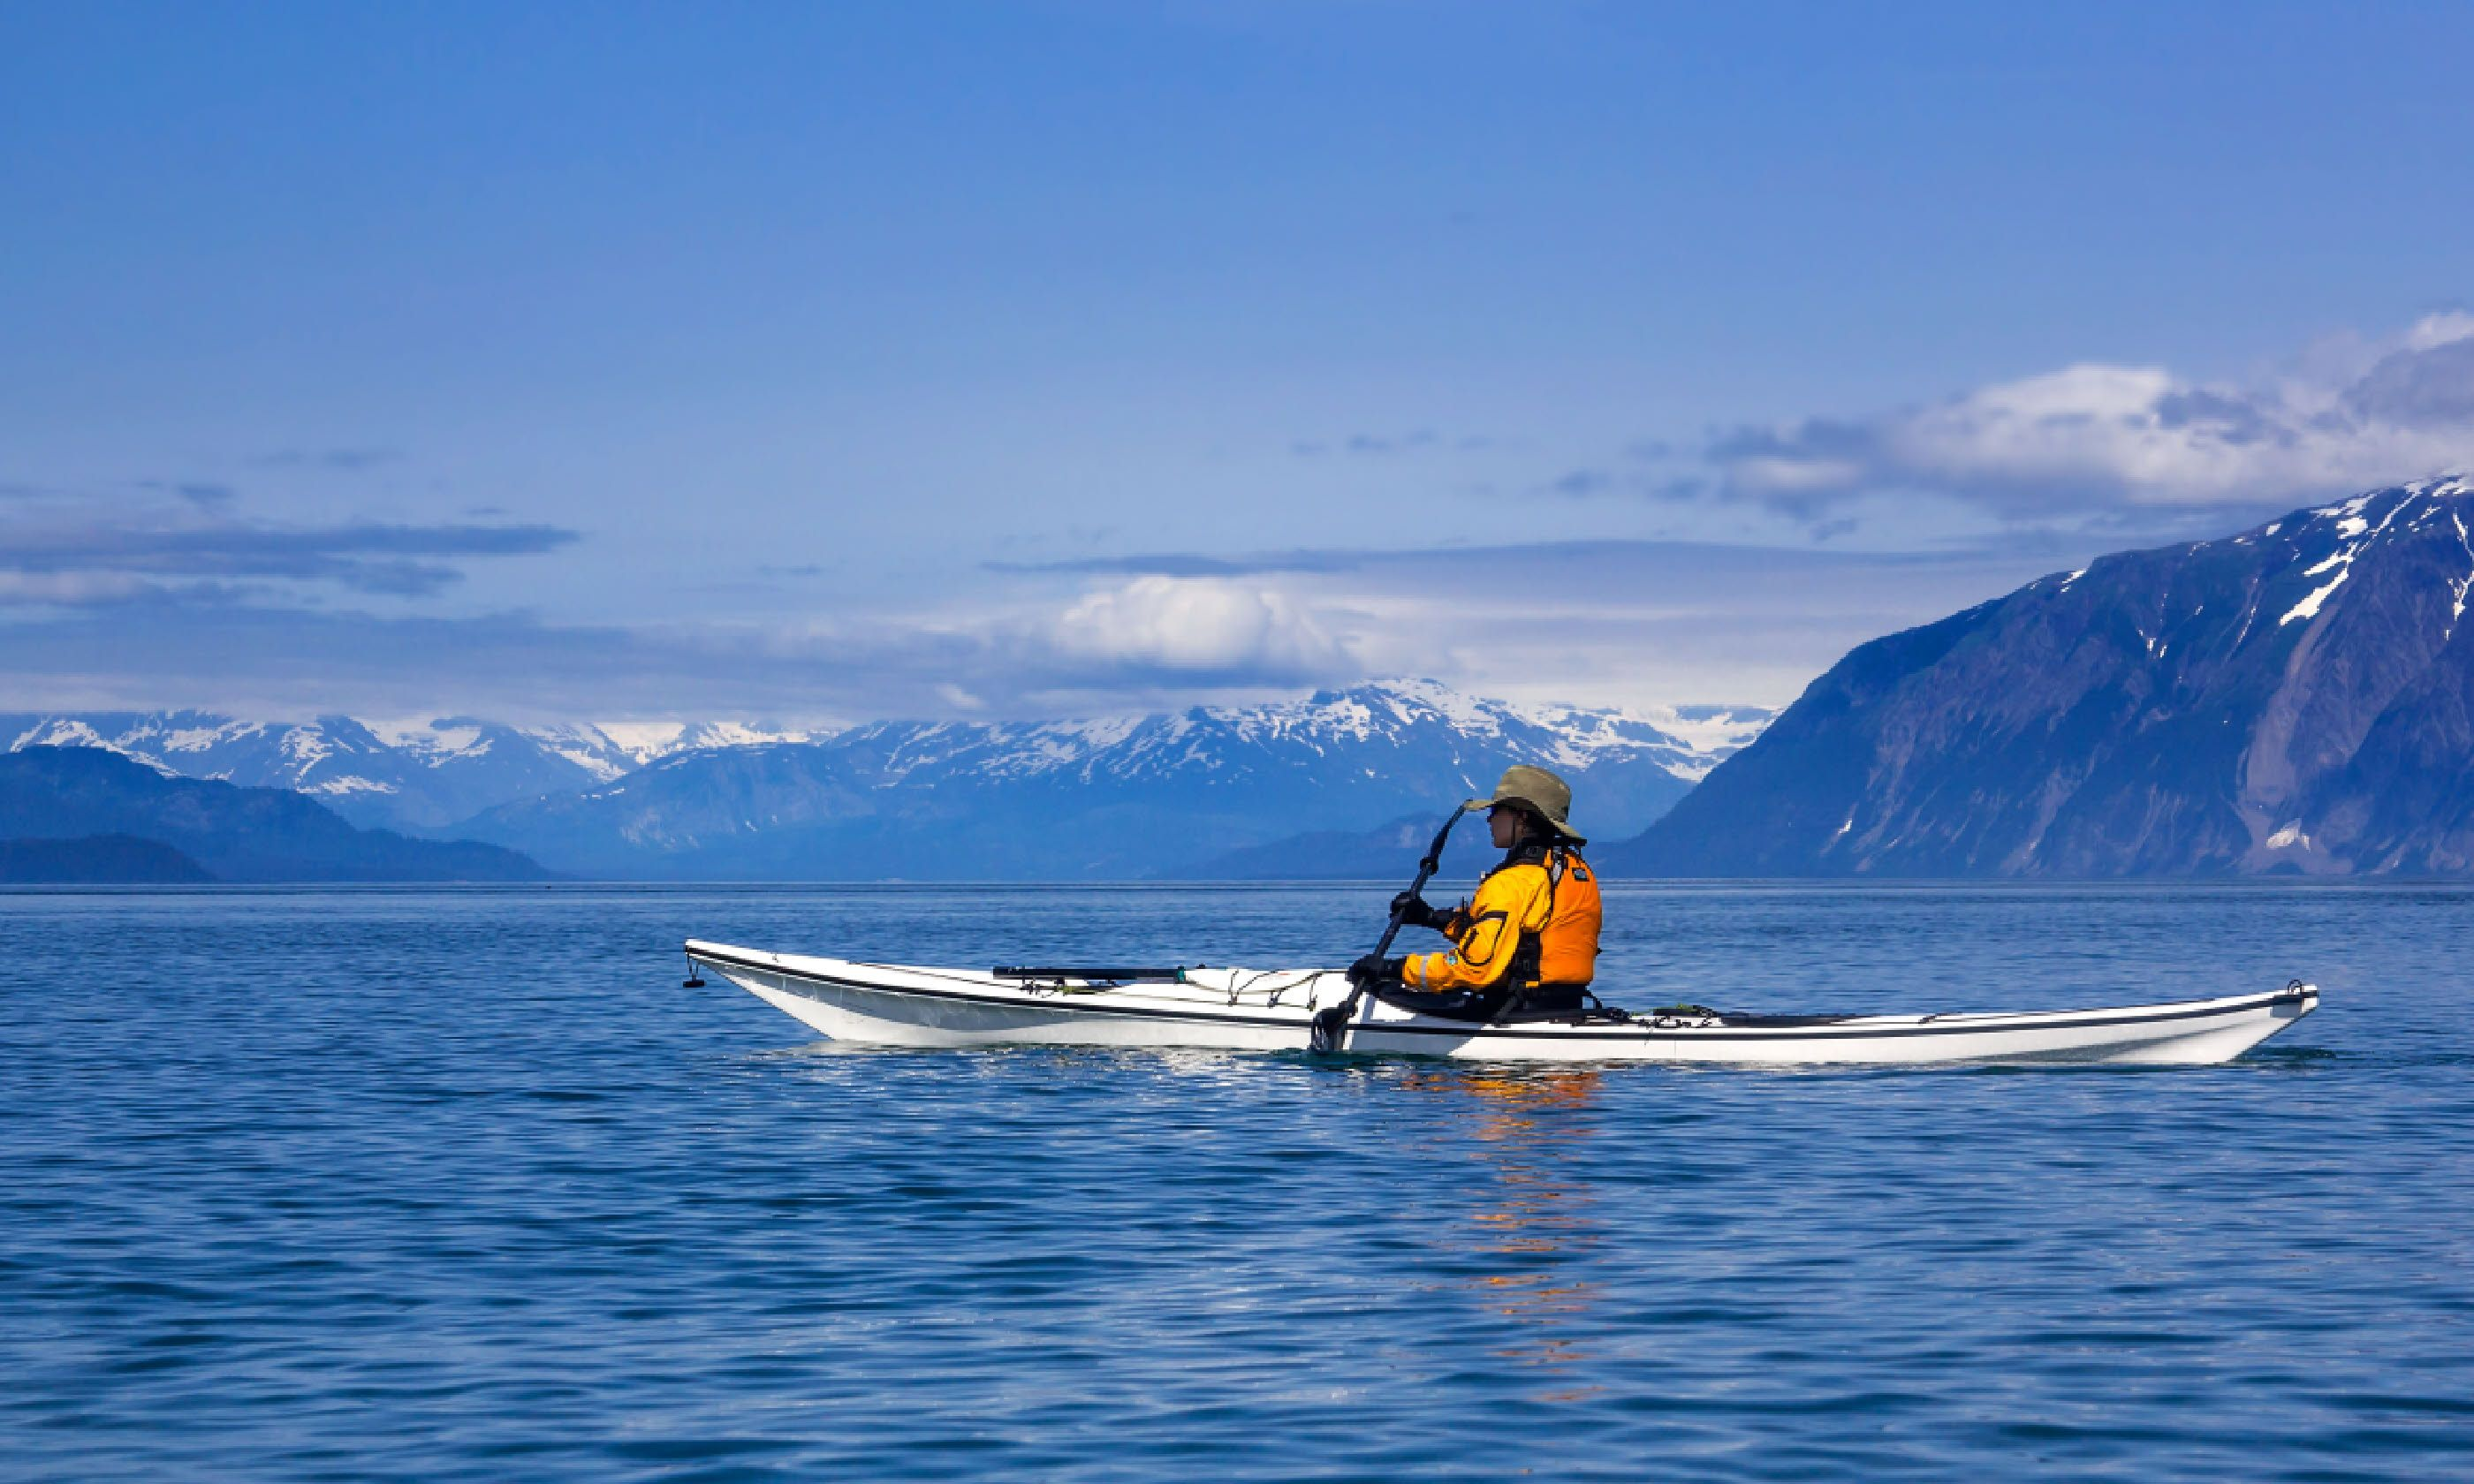 Kayaking in Glacier Bay National Park (Shutterstock)